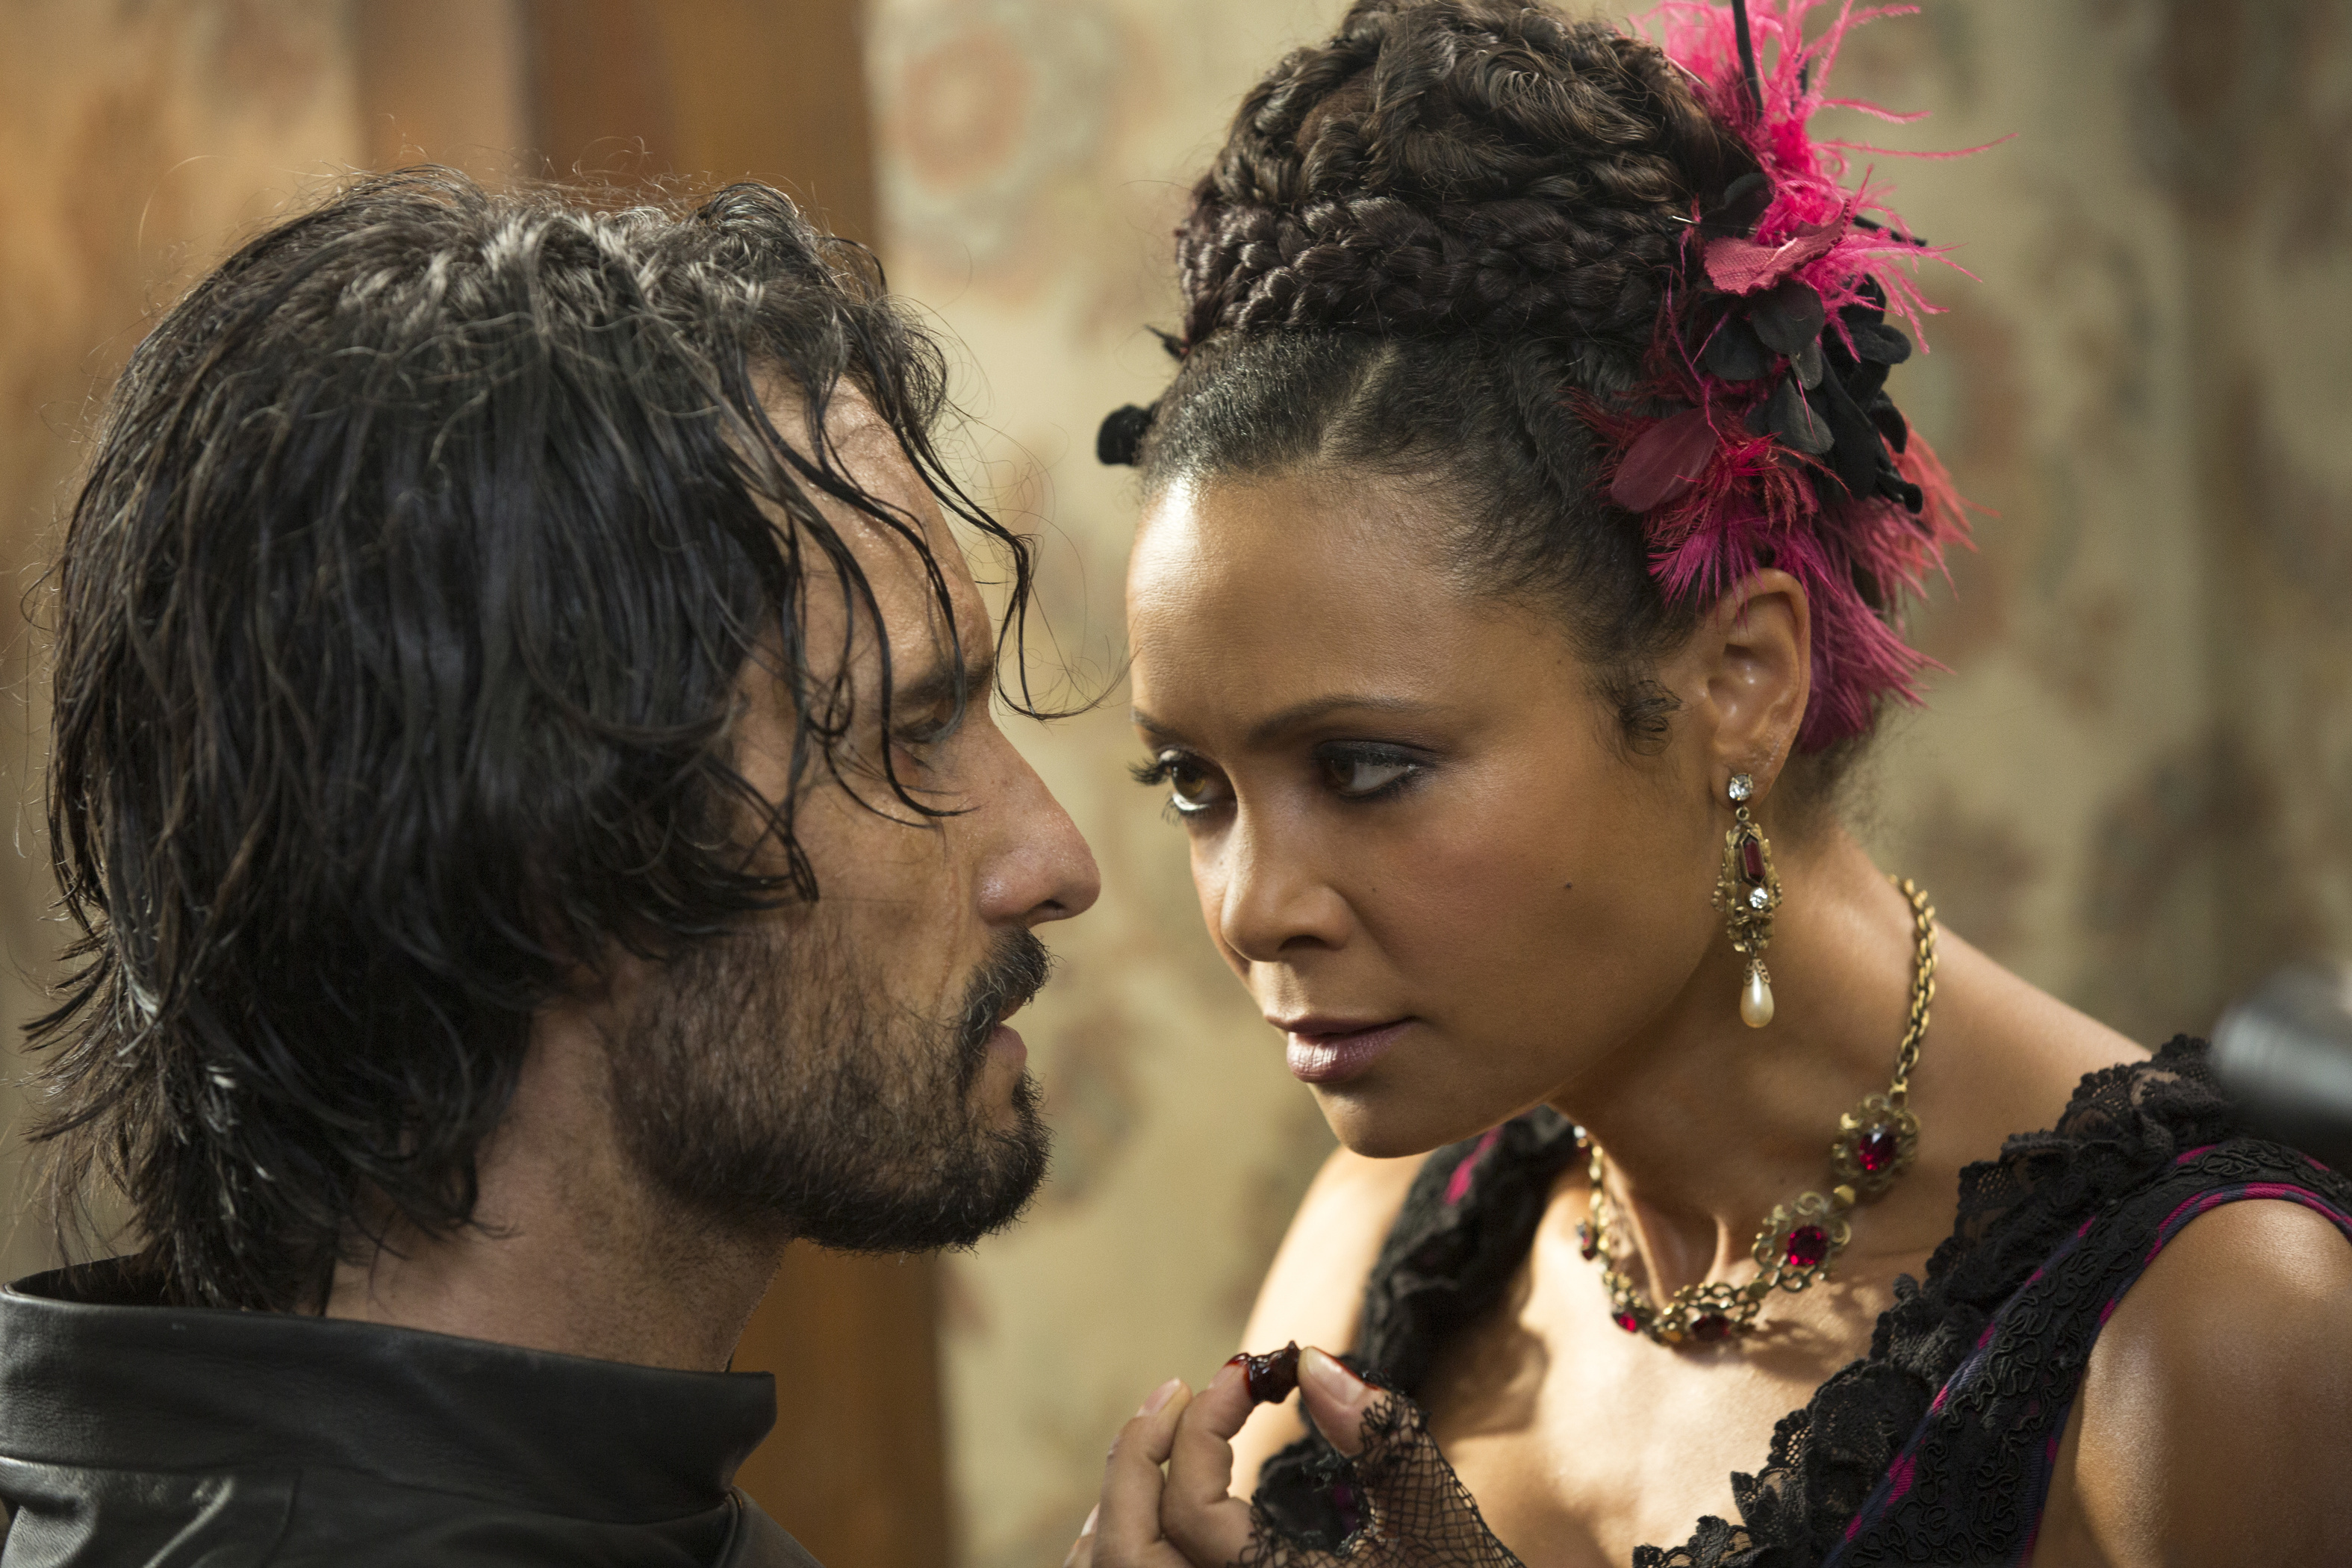 Hector and Maeve in 'Westworld'